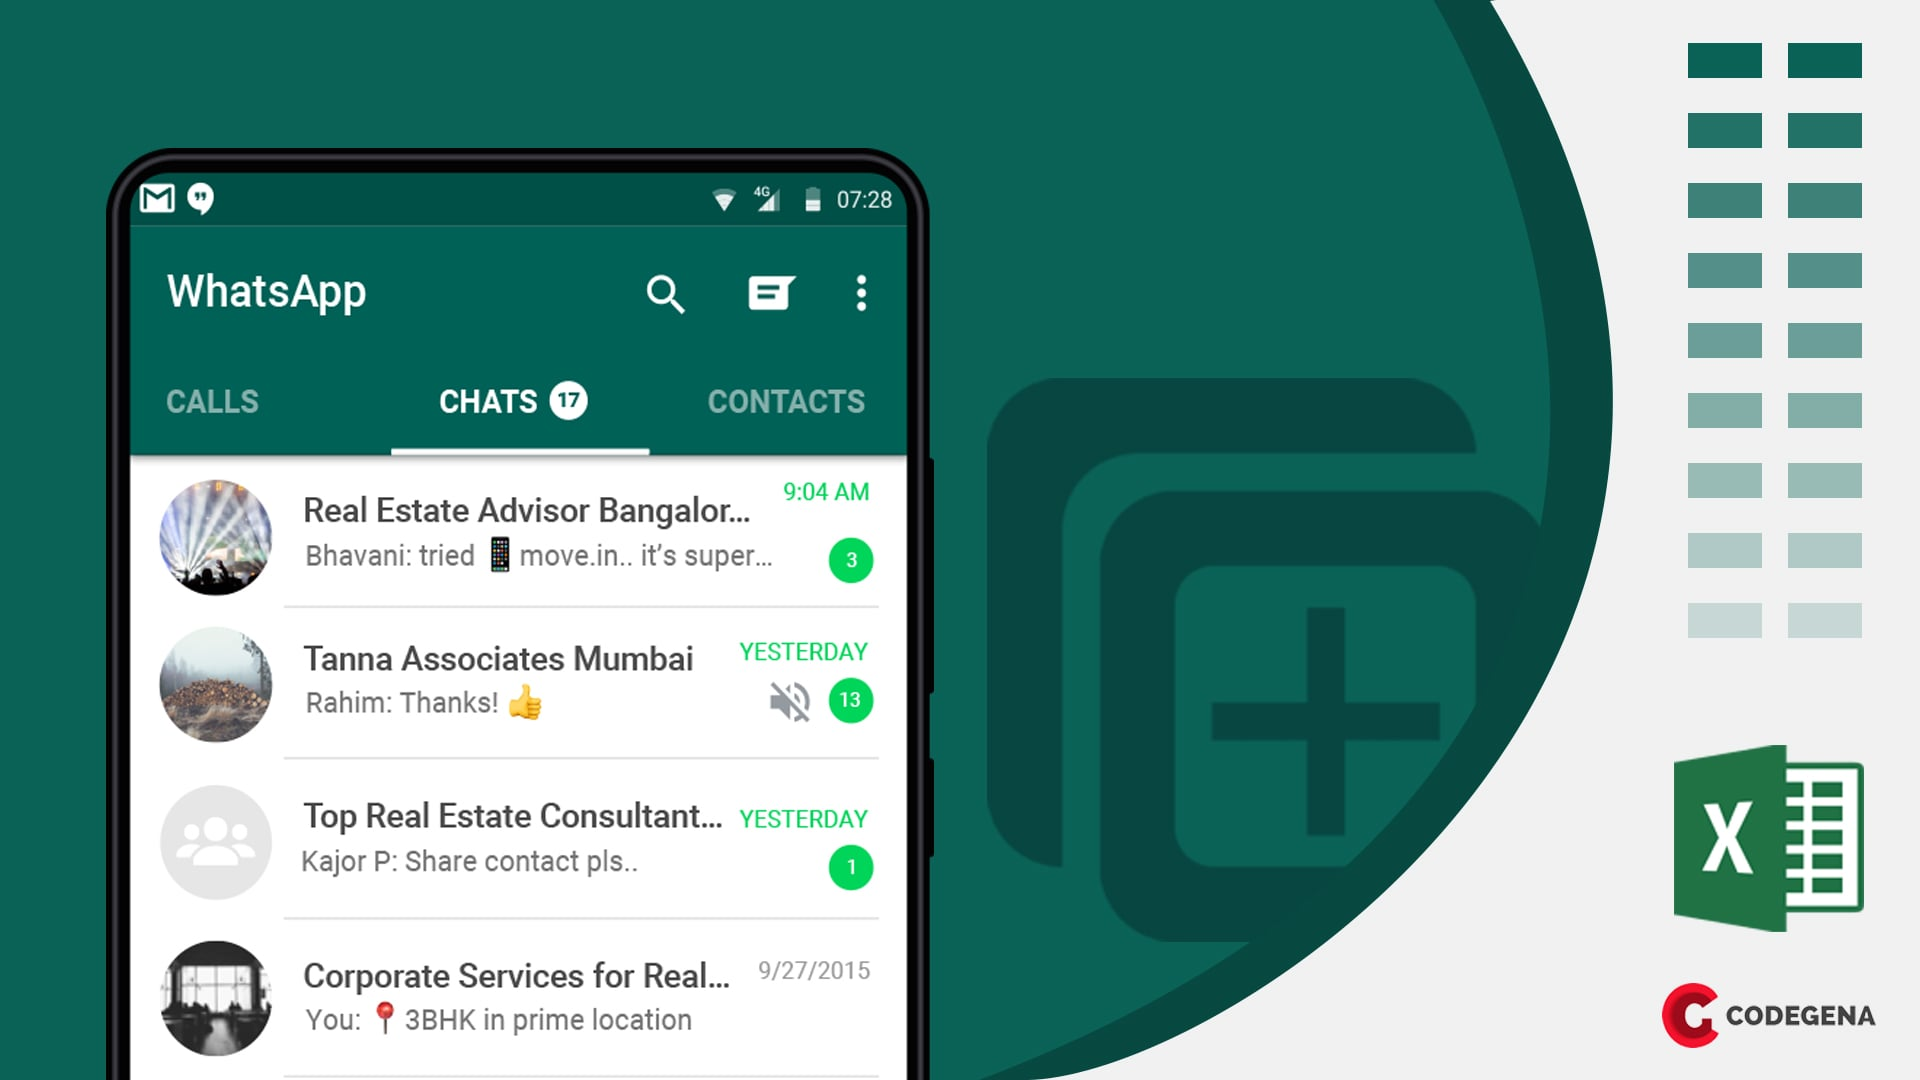 How to bulk add members to a whatsapp group from an excel sheet